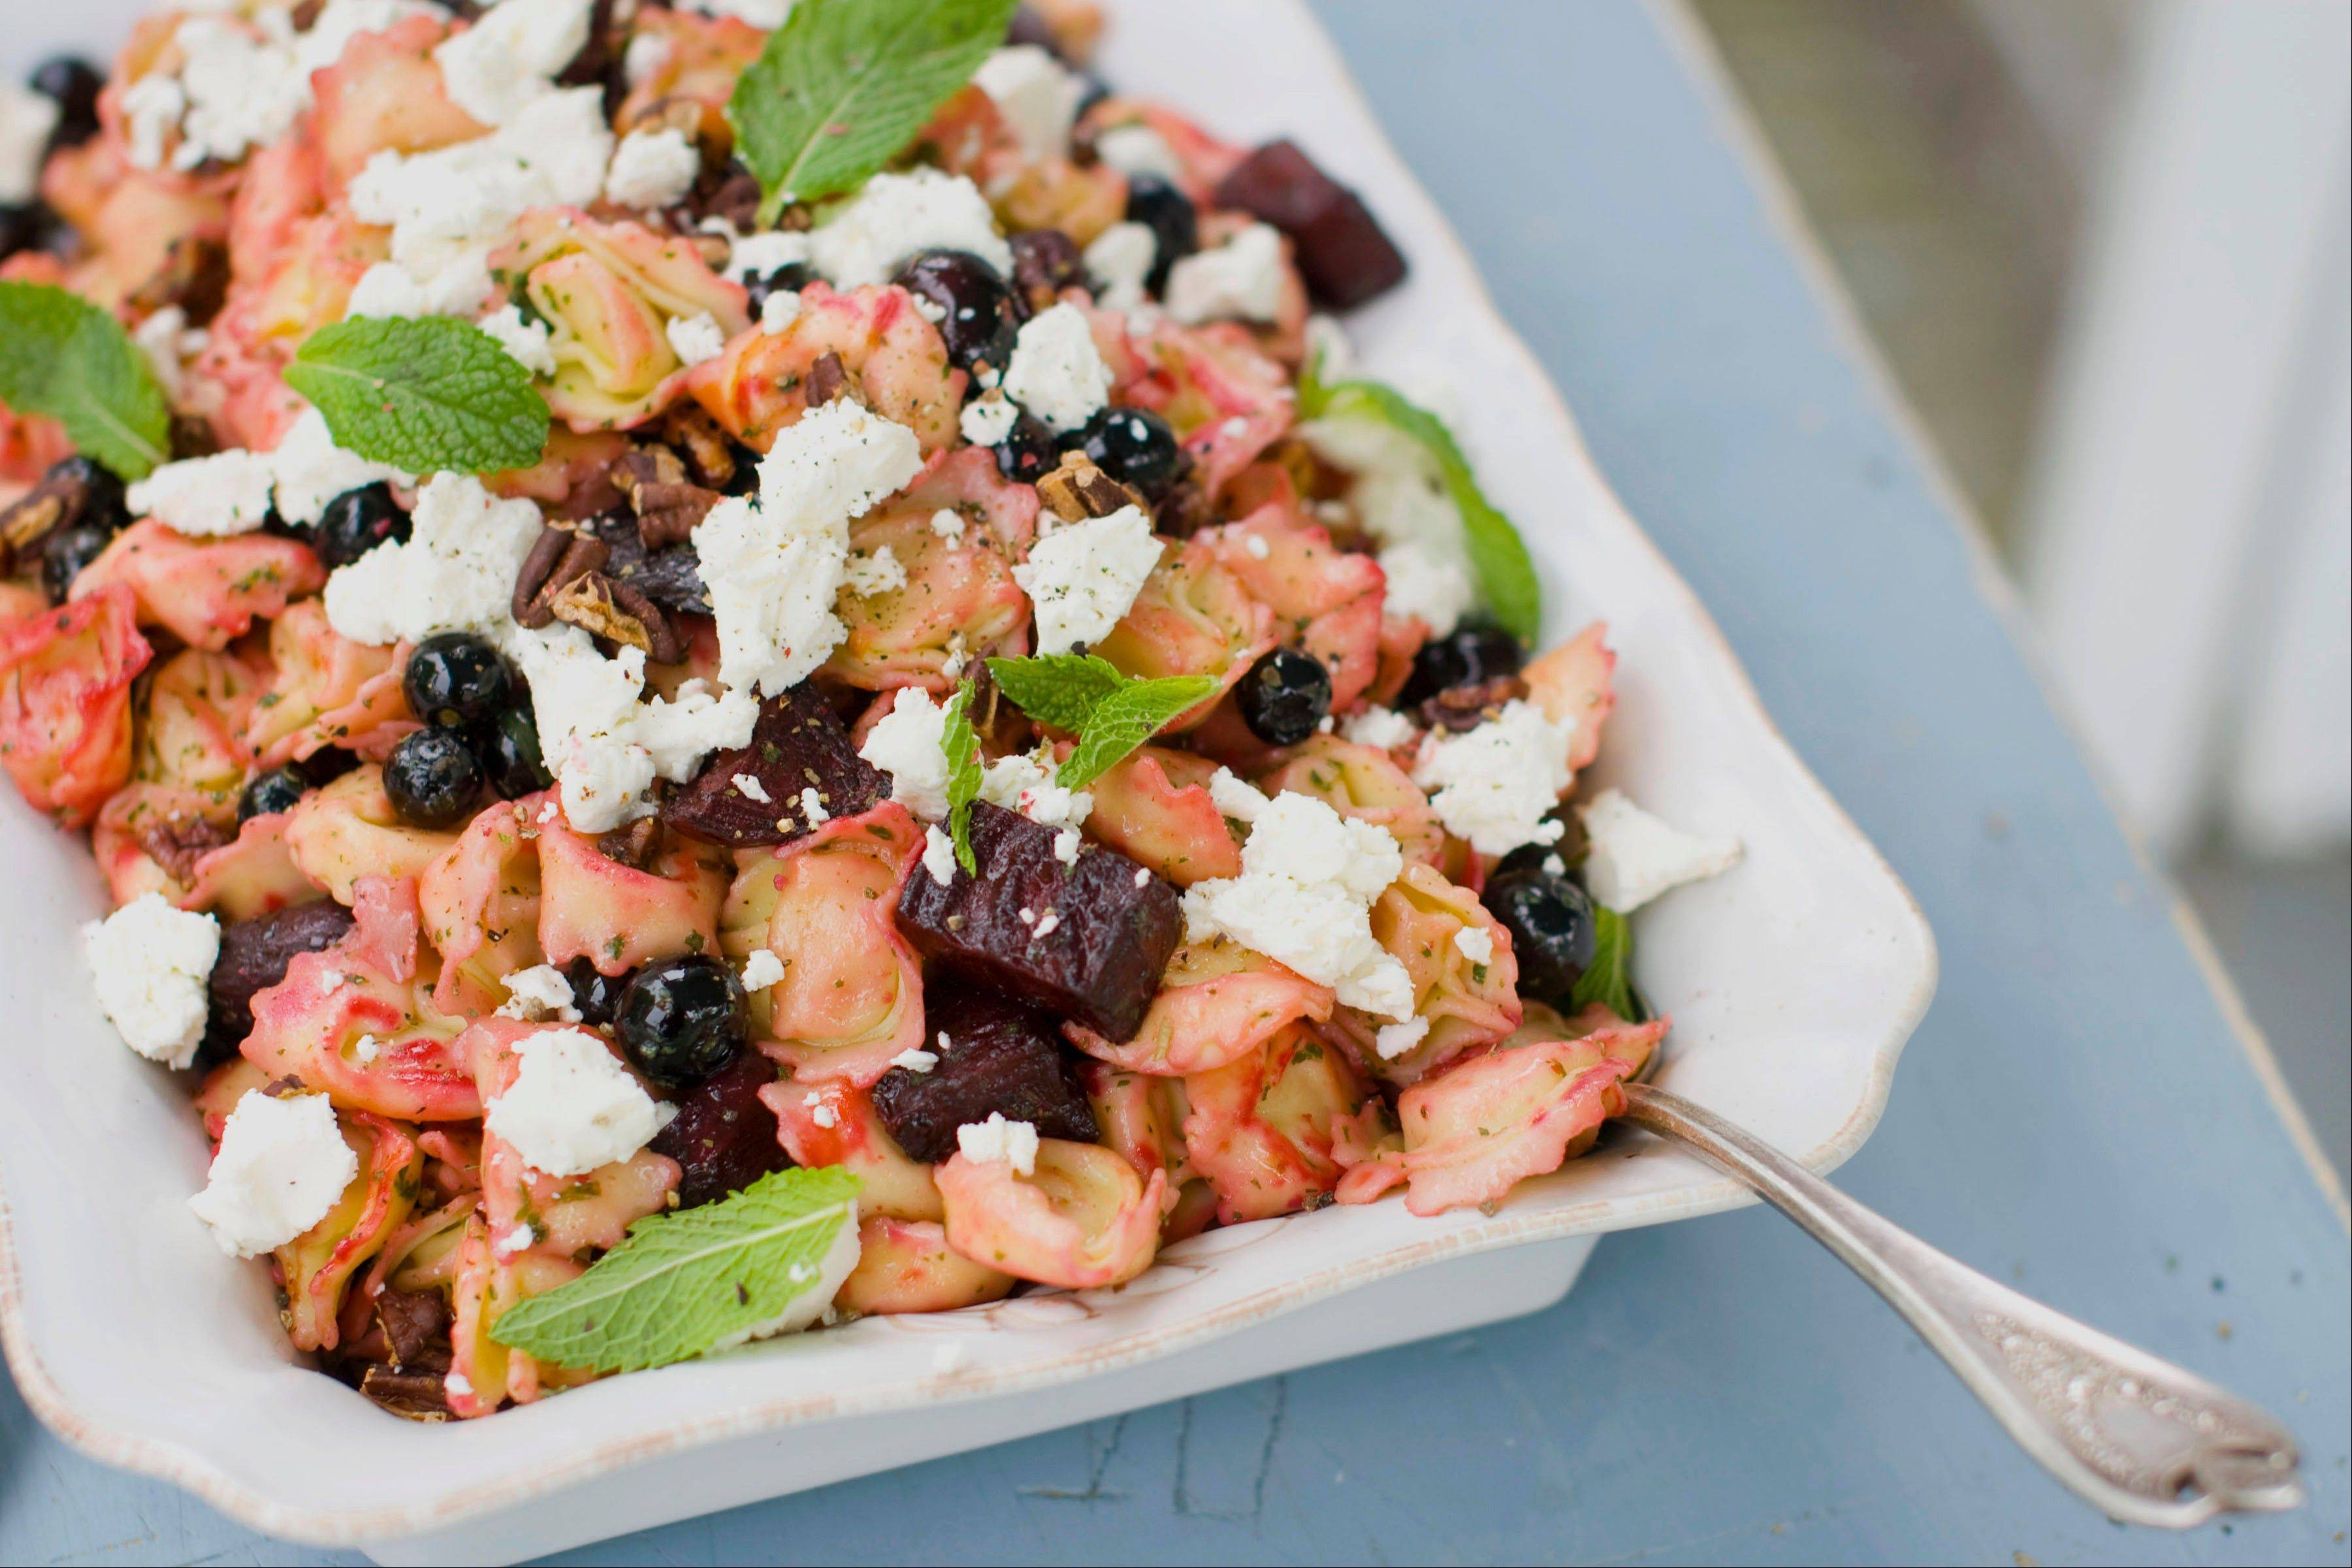 Roasted beets add color and sweetness to this tortellini salad with fresh blueberries and soft goat cheese.